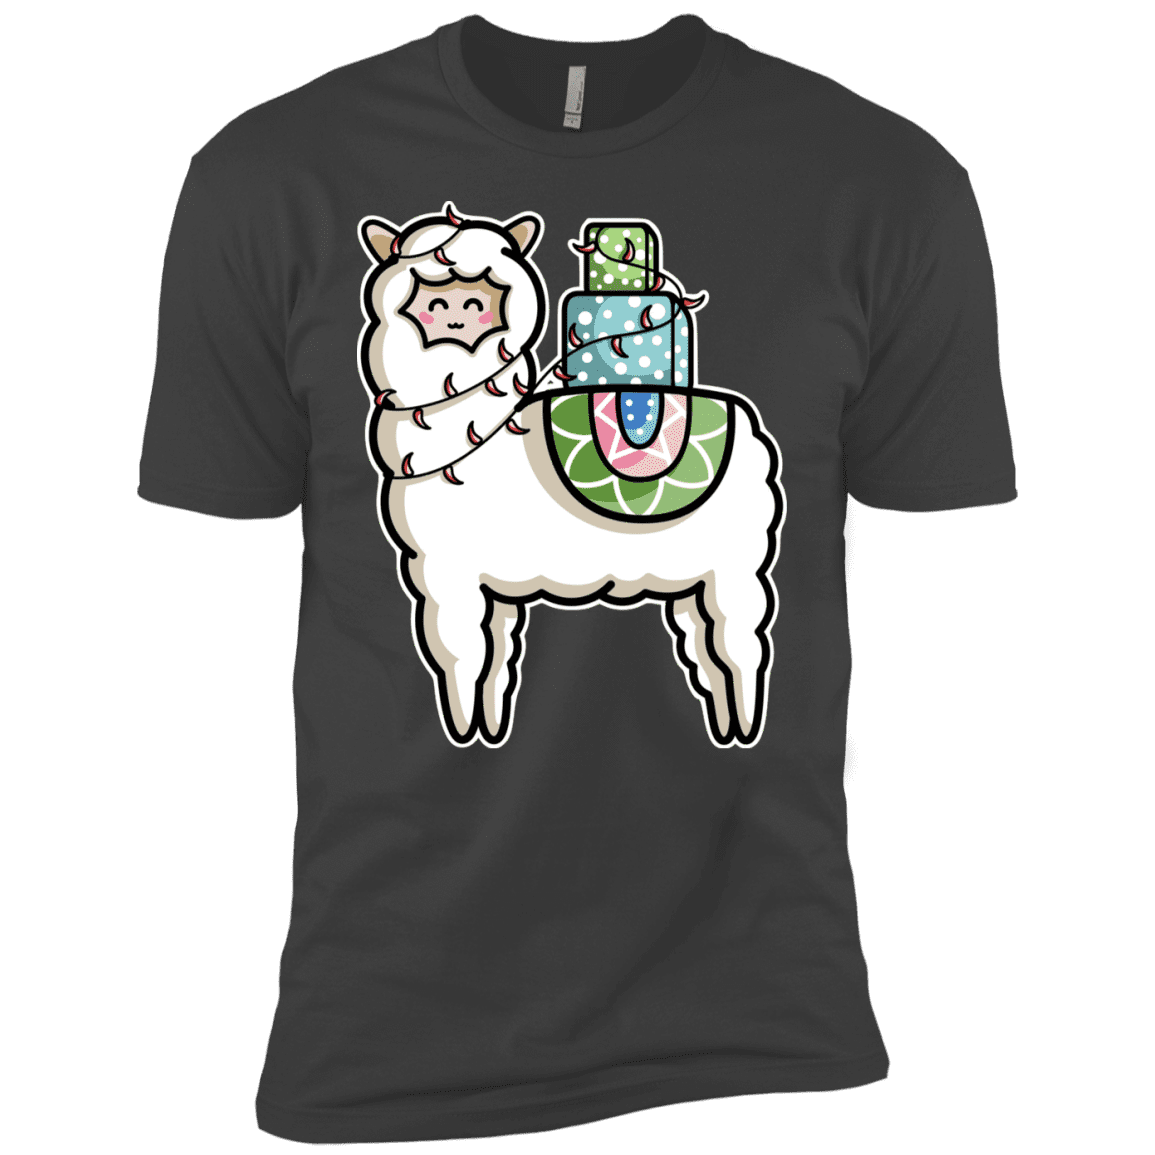 T-Shirts Heavy Metal / YXS Kawaii Cute Llama Carrying Presents Boys Premium T-Shirt